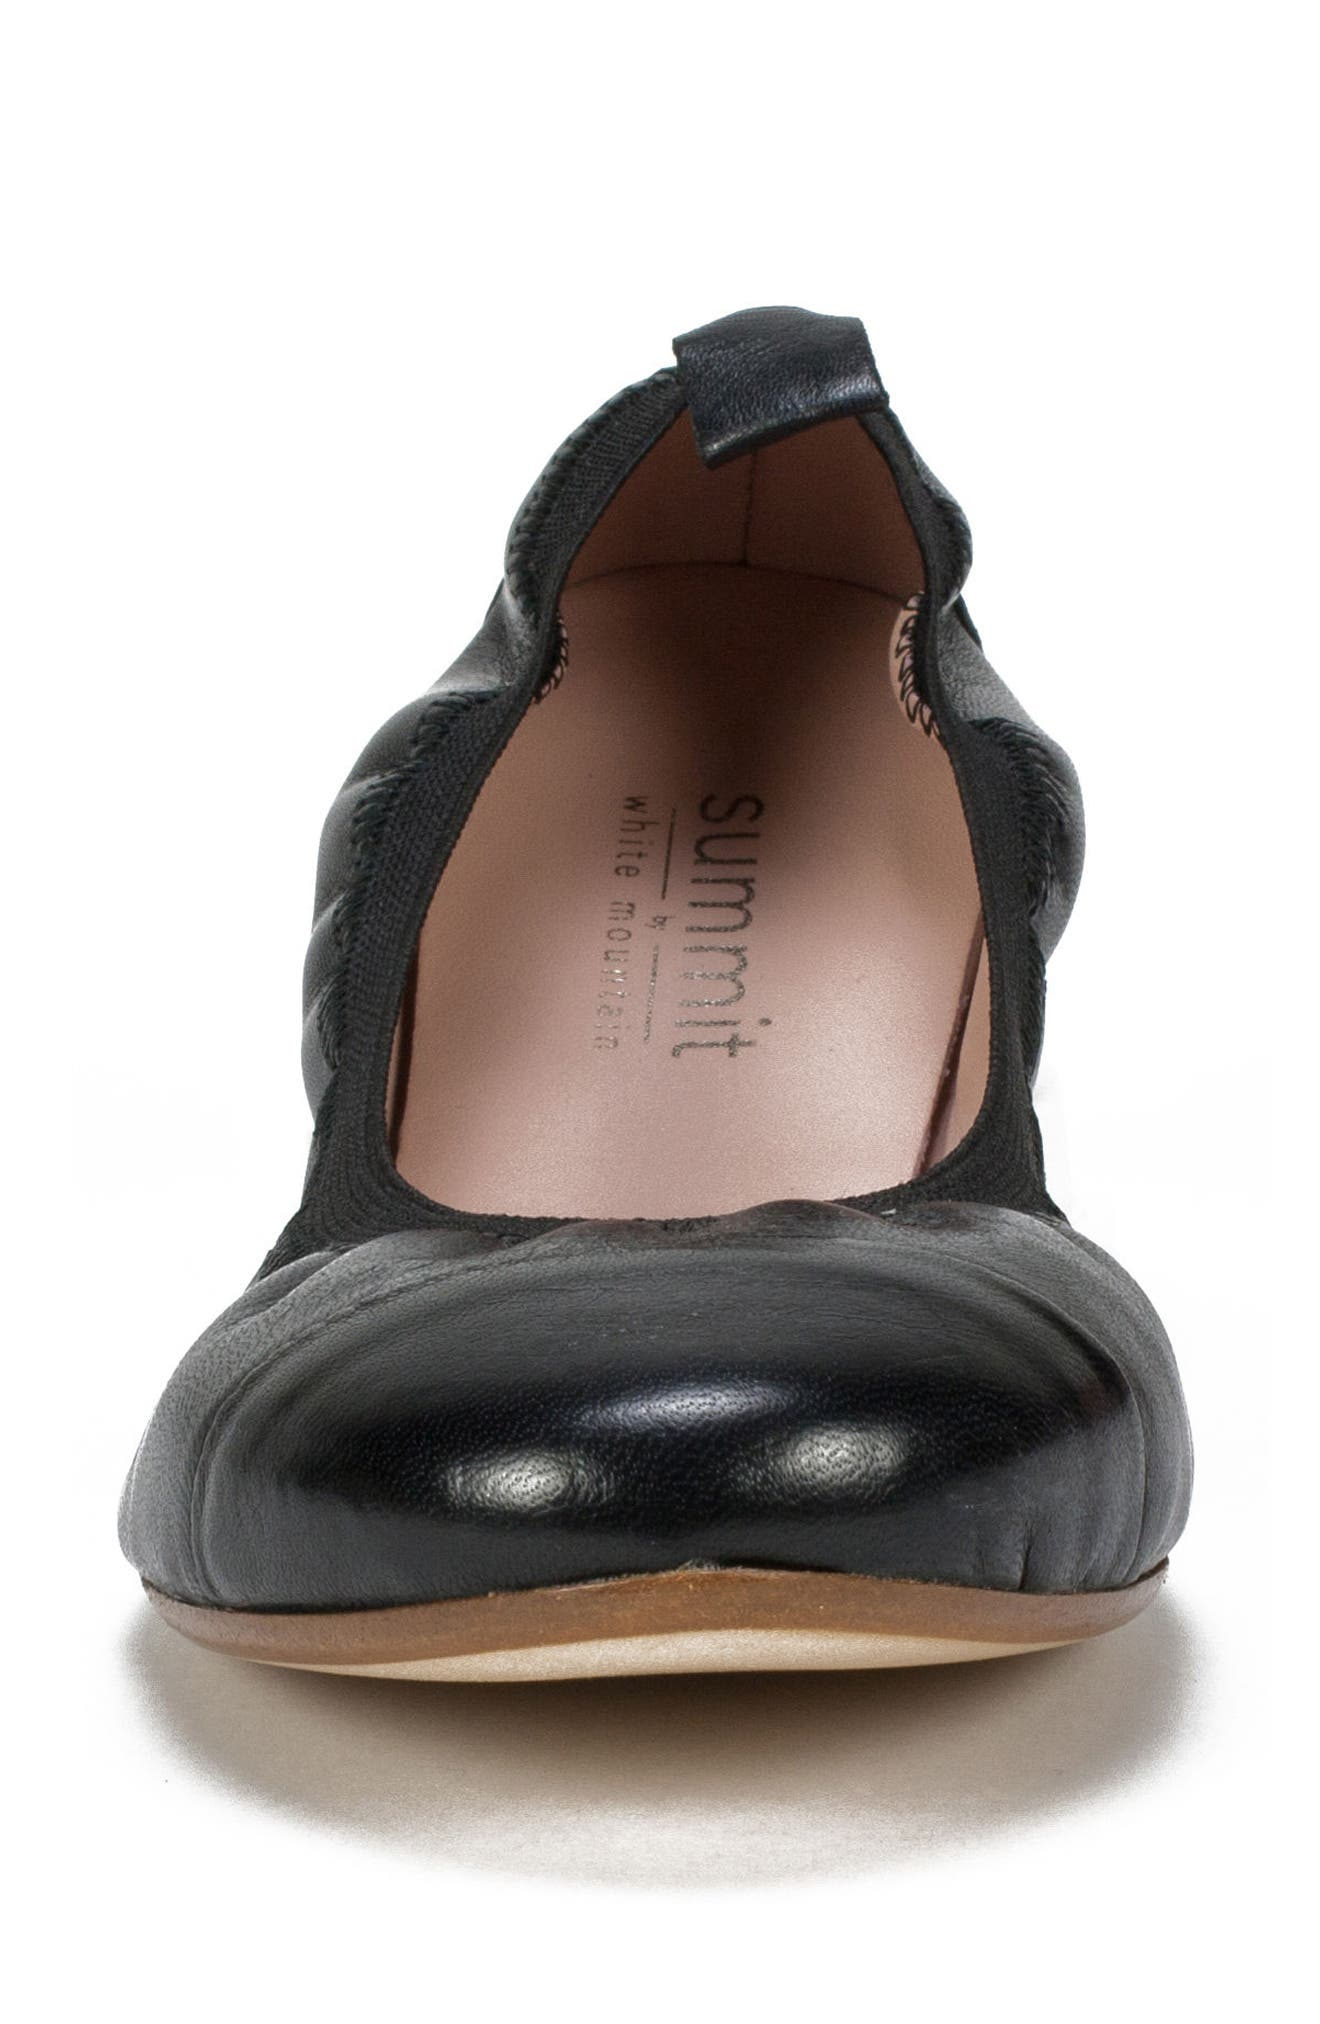 Summit Kara Ballet Flat,                             Alternate thumbnail 4, color,                             001